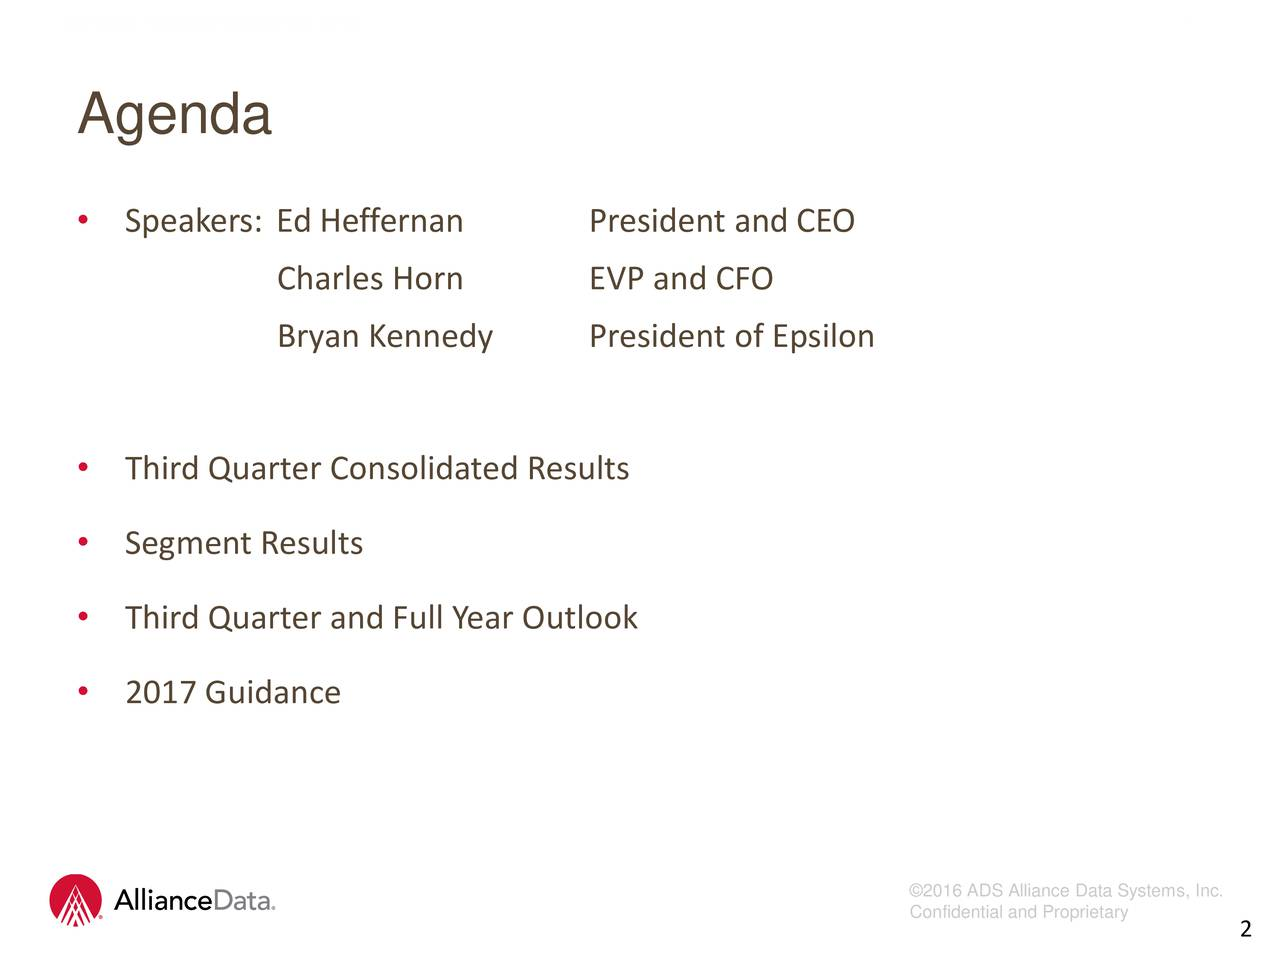 Agenda Speakers: Ed Heffernan President and CEO Charles Horn EVP and CFO Bryan Kennedy President of Epsilon Third Quarter Consolidated Results Segment Results Third Quarter and Full Year Outlook 2017 Guidance 2016 ADS Alliance Data Systems, Inc. Confidential and Propri2tary